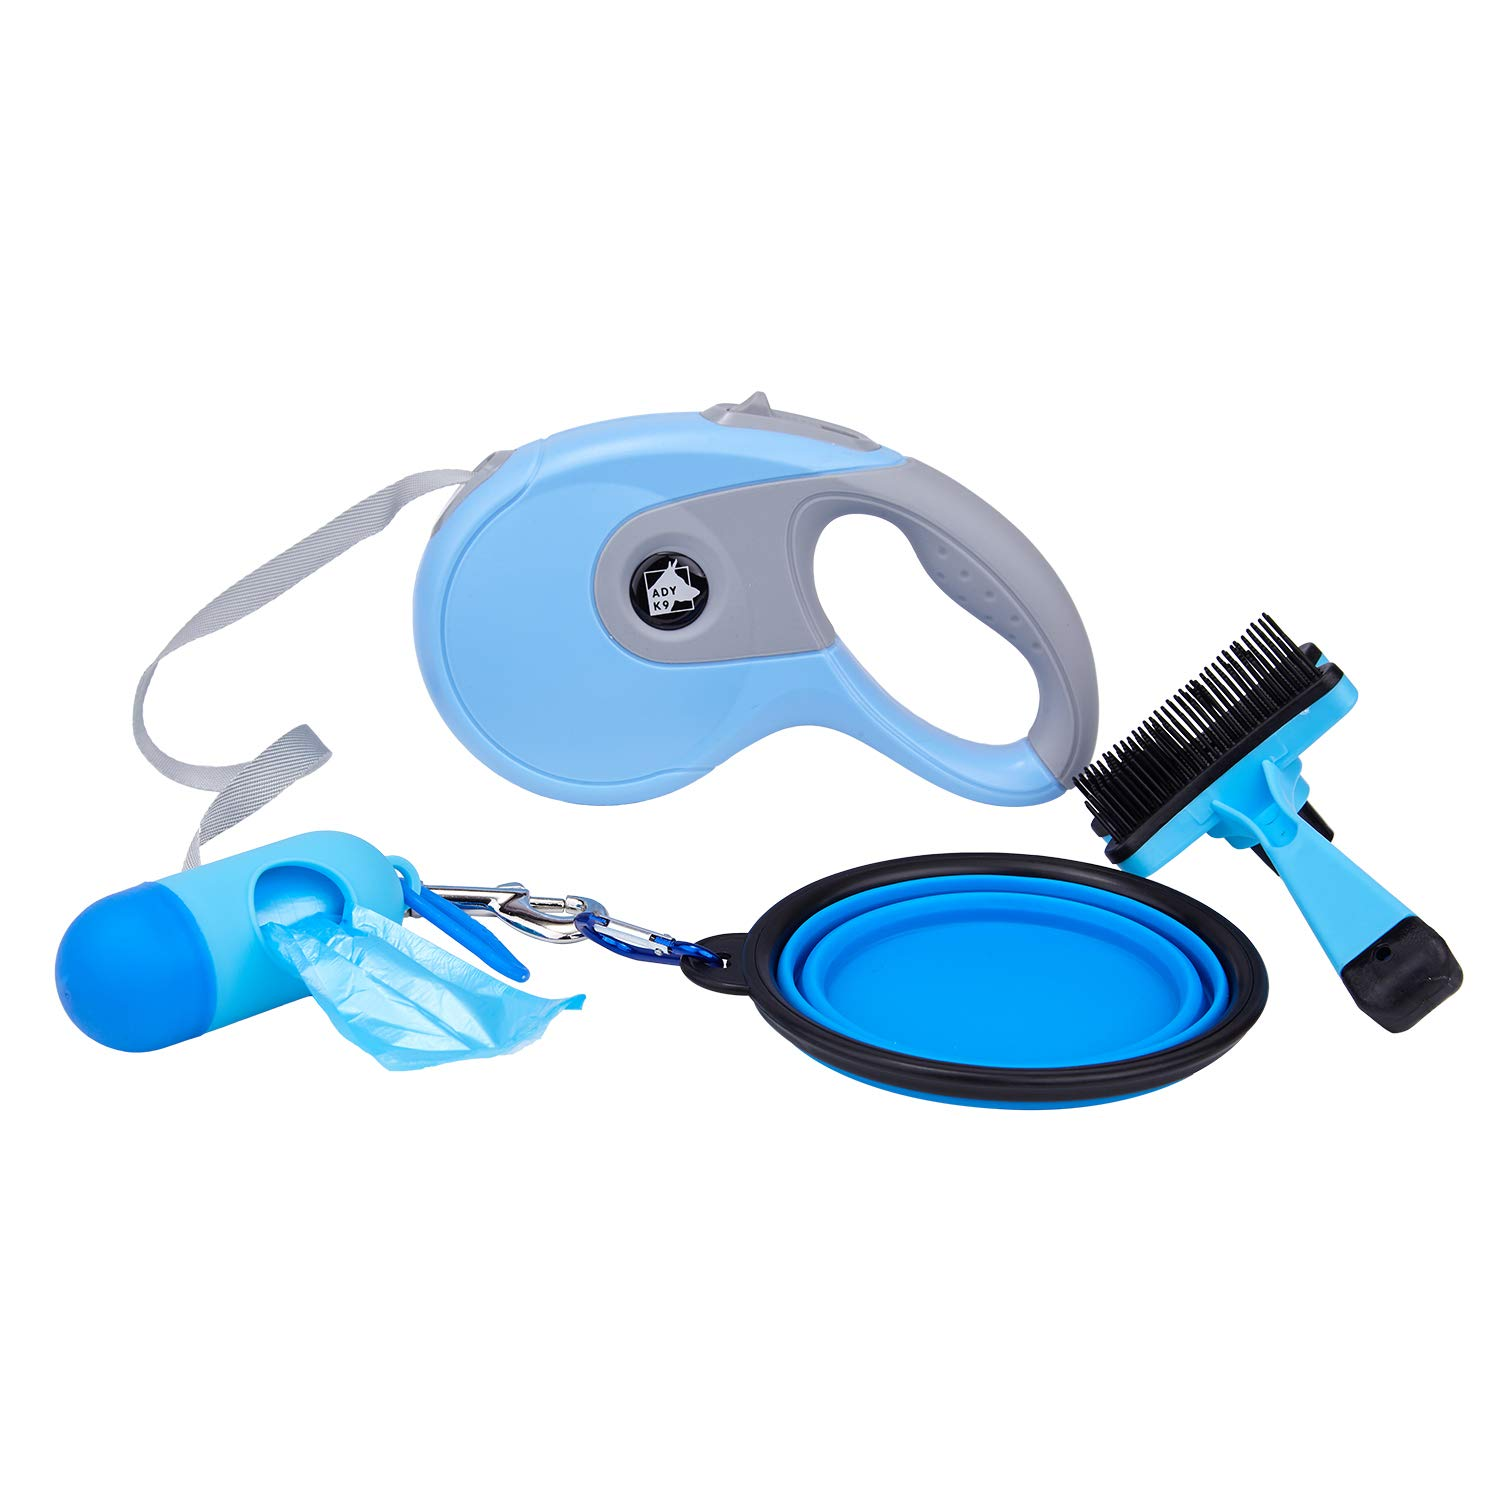 AdyK9 Retractable Dog Leash Ultimate Dog Care Kit (16') Adjustable Cord for Walking, Jogging, Travel | Heavy-Duty, Durable| Incl. Waste Bag Dispenser w/Free Bags, Collapsible Bowl and Brush (Blue)